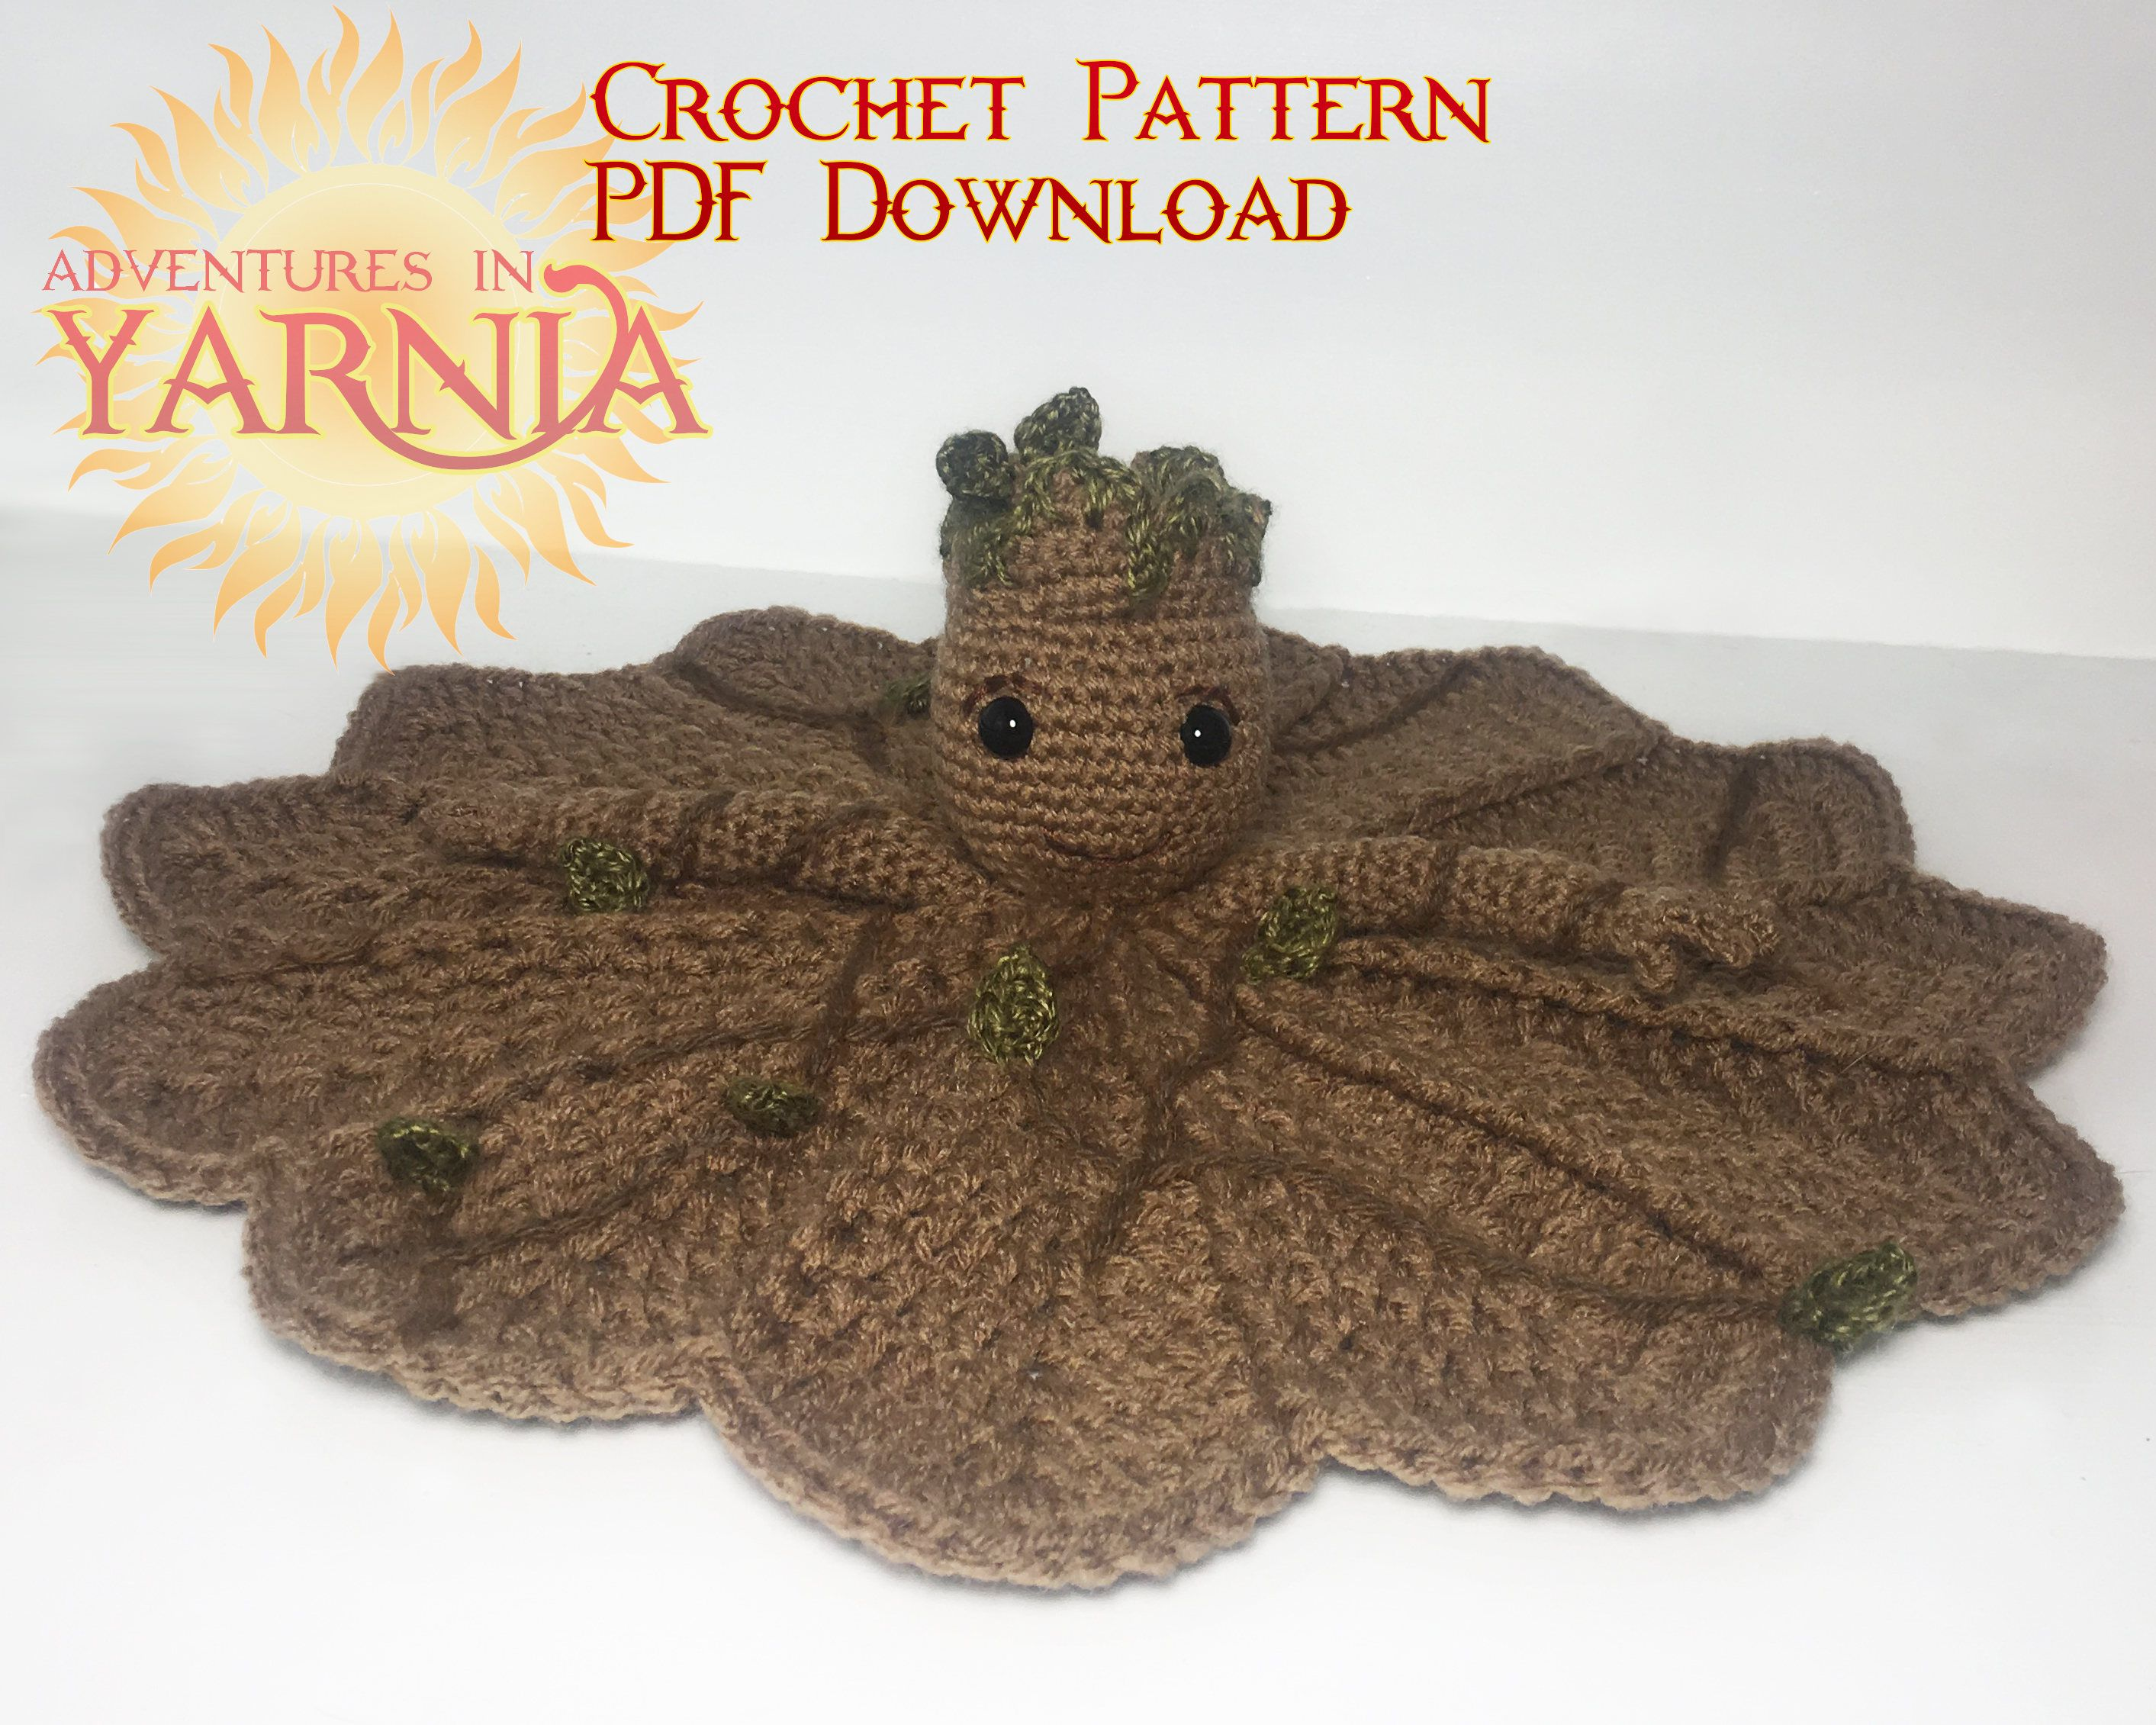 Free Crochet Pattern: Potted Baby Groot from Guardians of the ... | 2261x2826